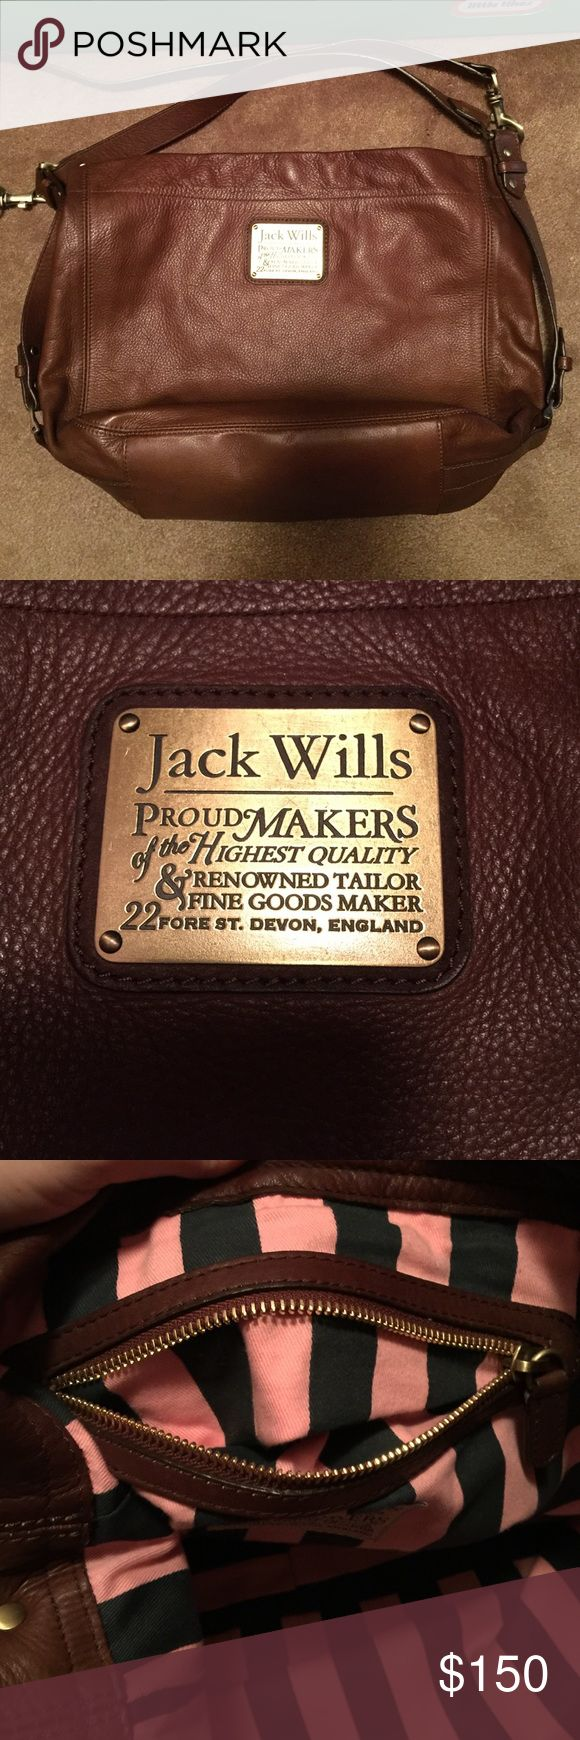 Jack Wills Leather Bag Like new condition Jack Wills Leather Bag. Inside pocket is sewn into the back, making it mostly un-usable except for a pen or chapstick. There is also a pen mark on tag to prevent returning to the store. Like new condition and so beautiful! Jack Wills Bags Hobos